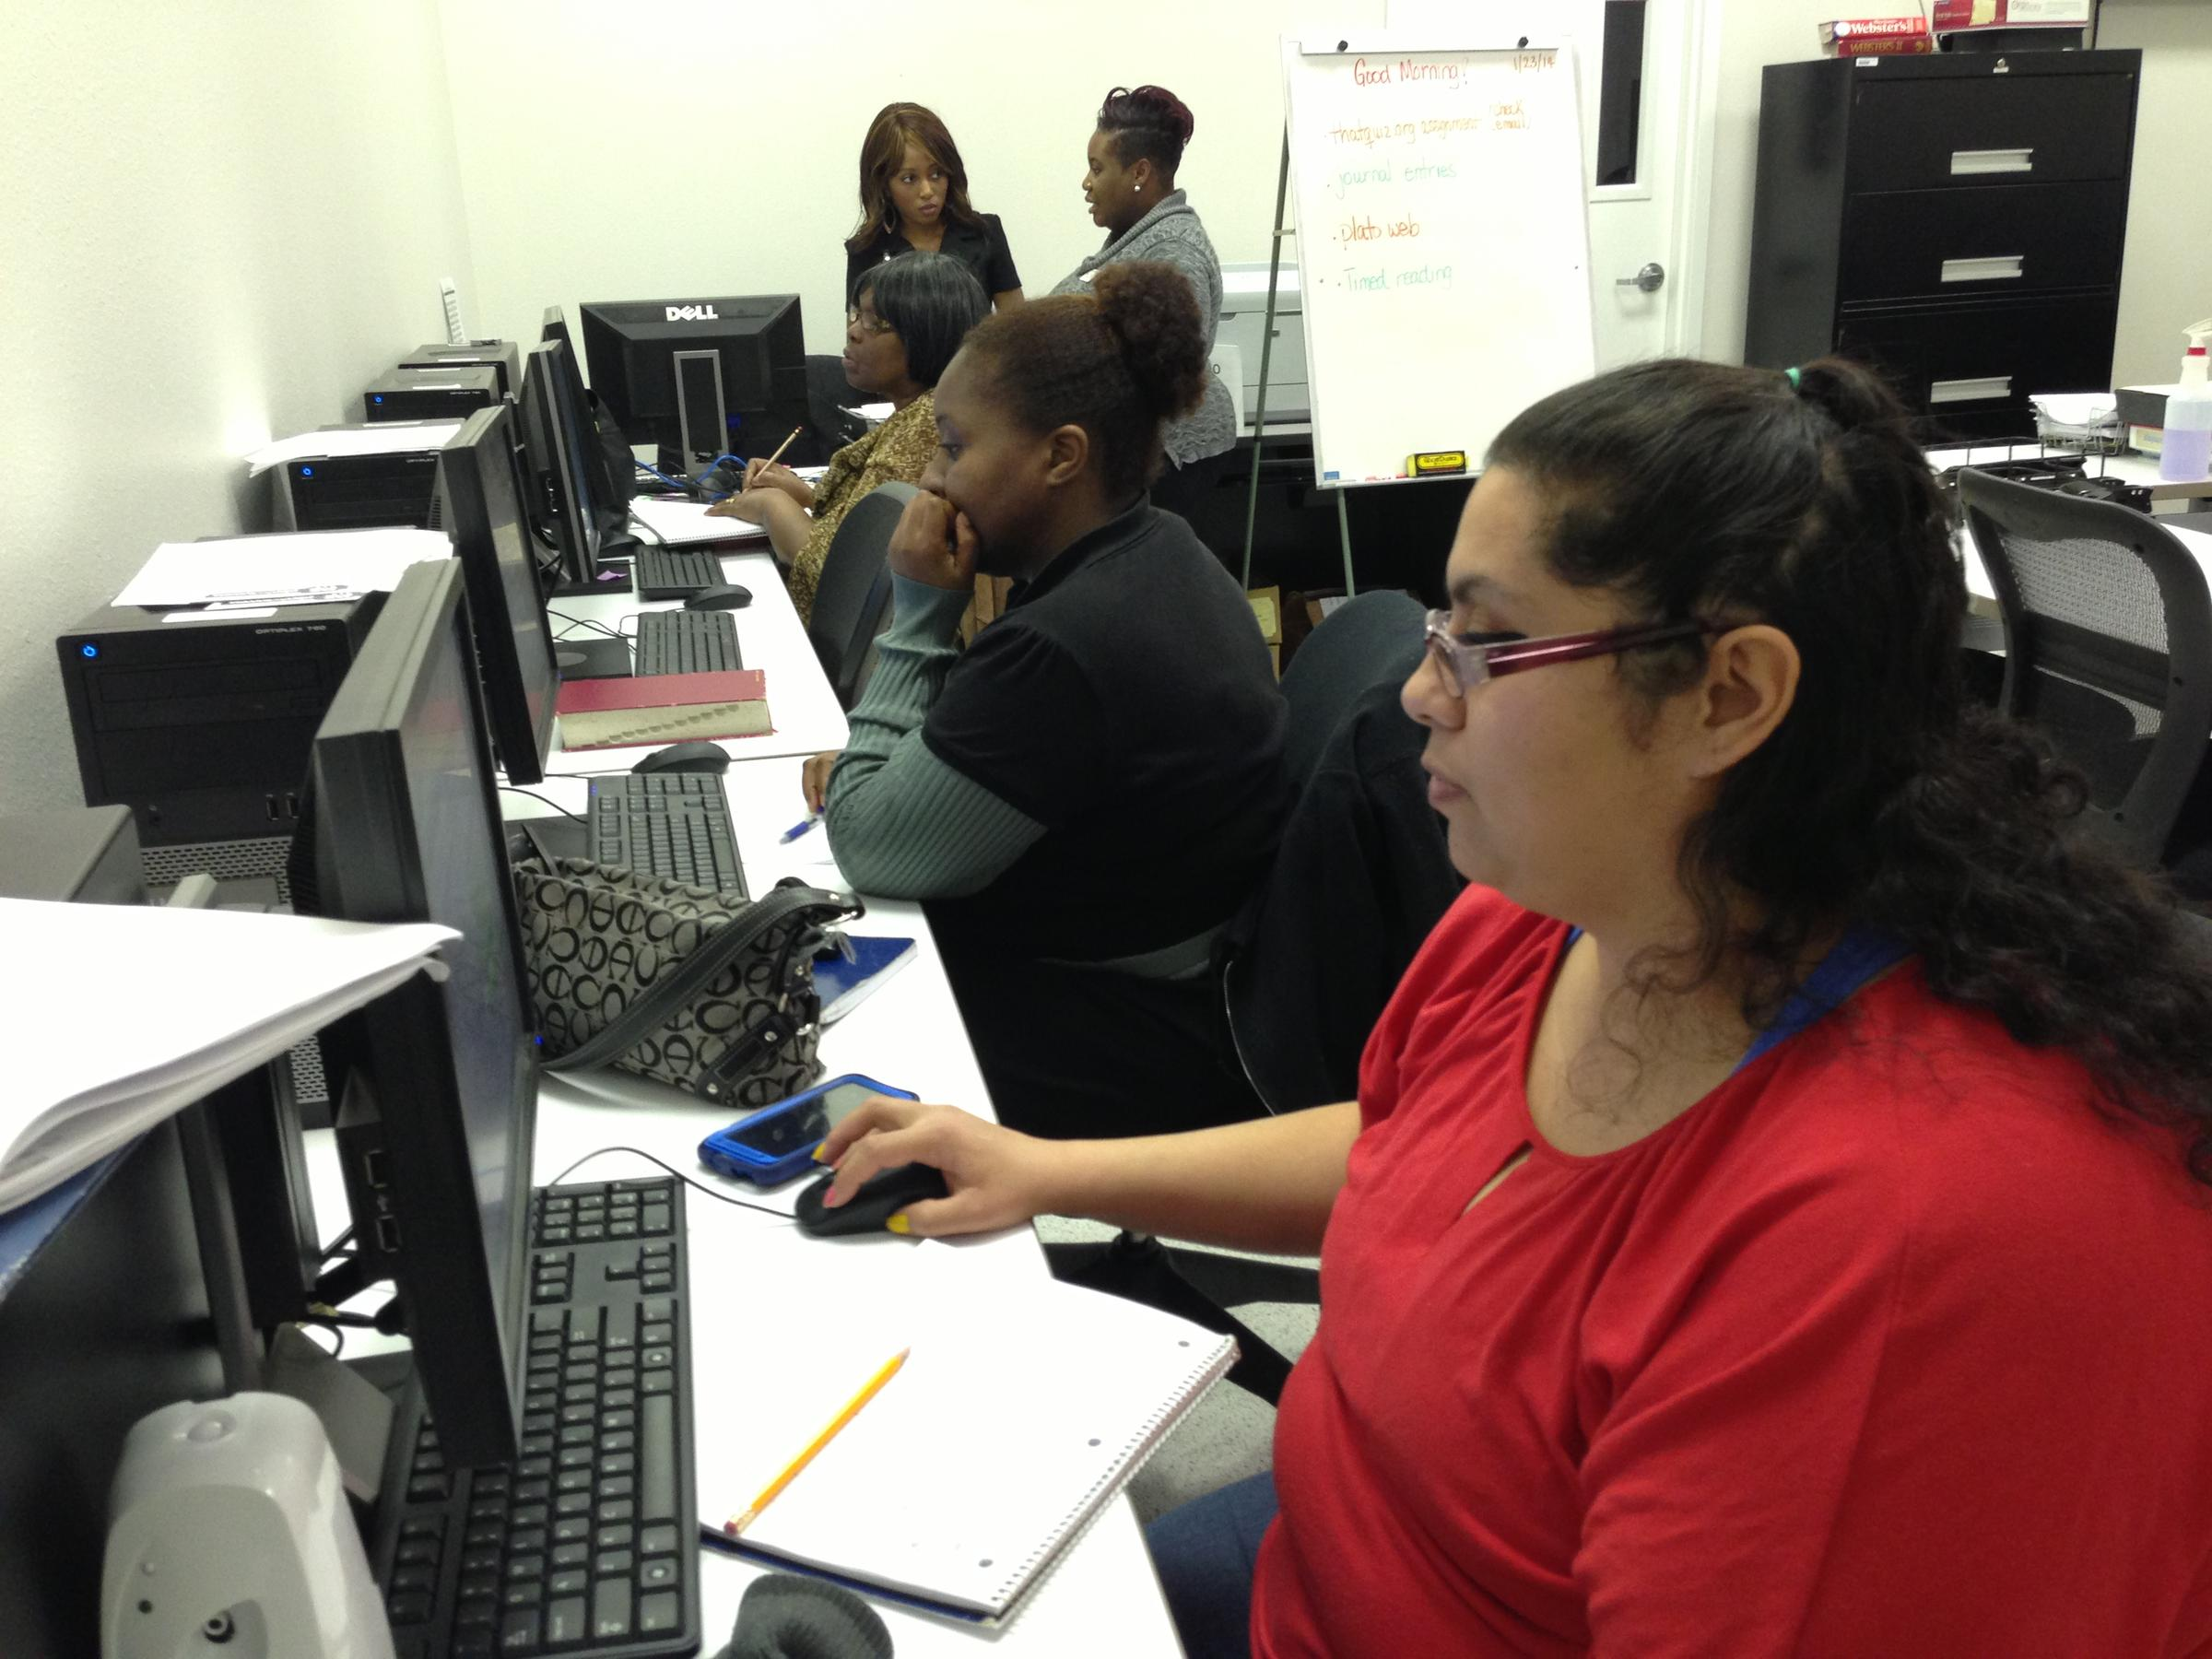 A New Ged Test Means New Challenges For Students And Instructors